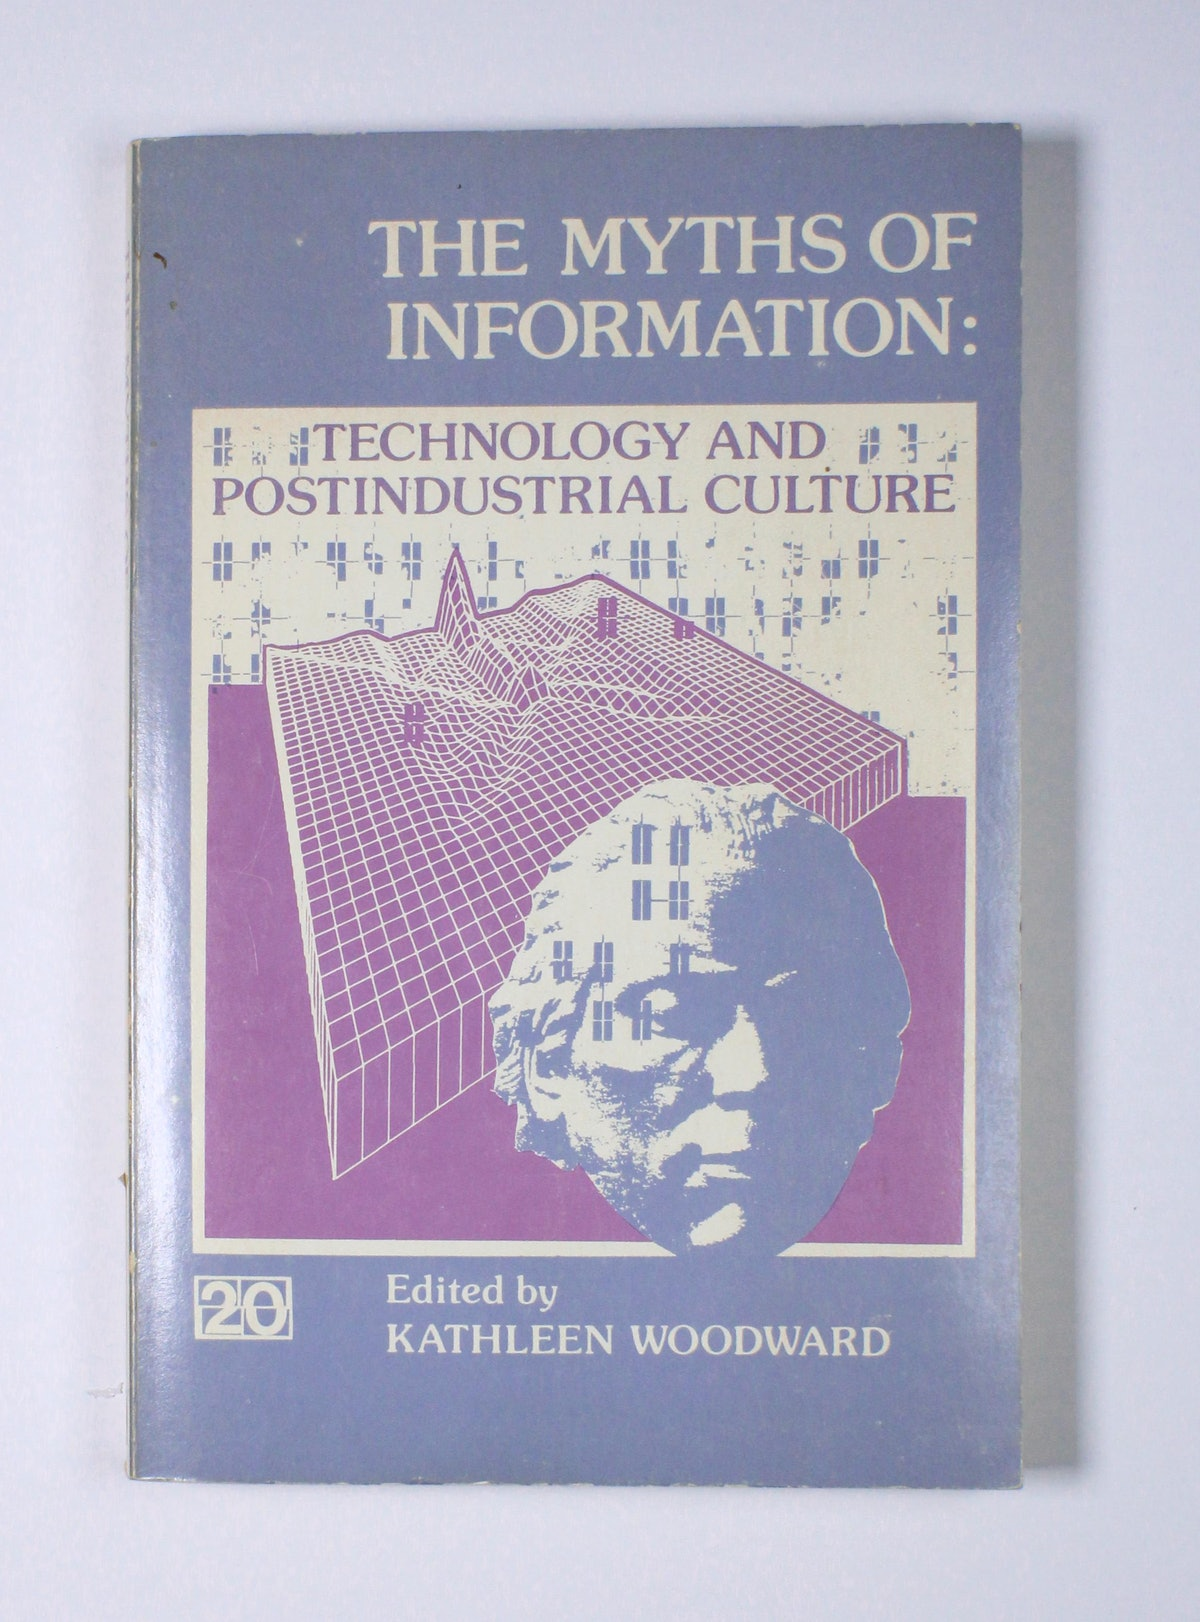 The Myths of Information: Technology and Postindustrial Culture